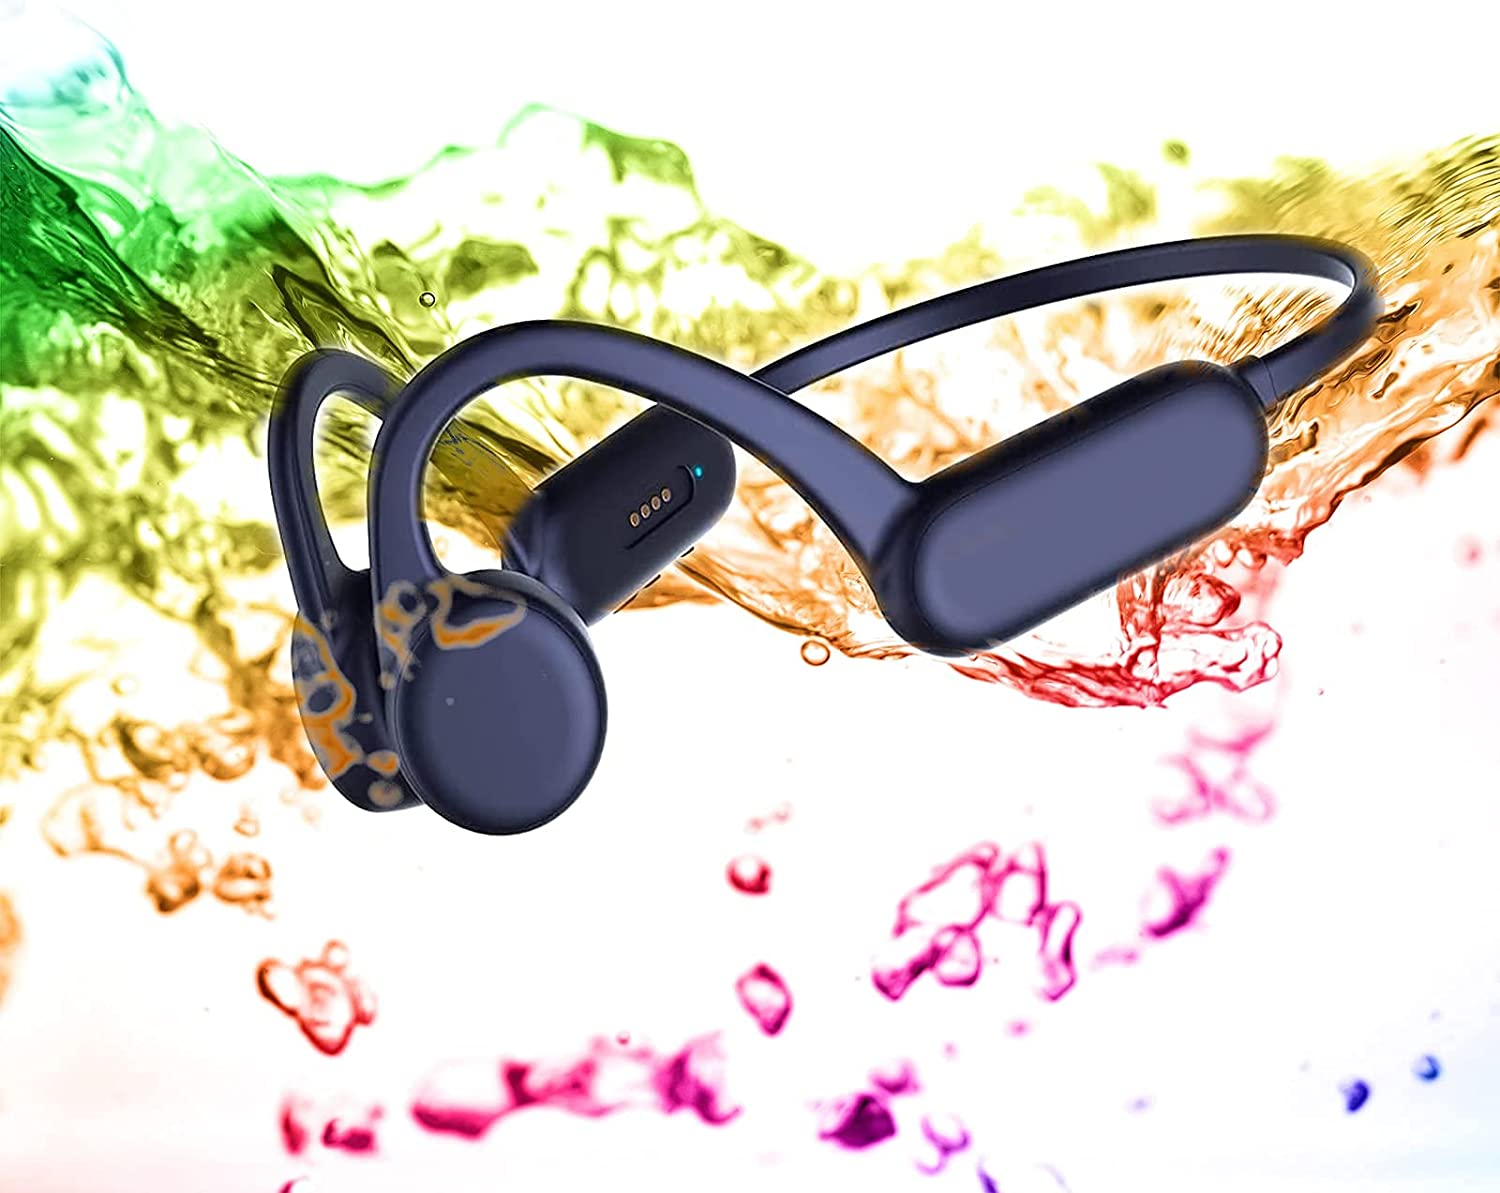 Bone Conduction Headphones Wireless Bluetooth Open Ear Swimming IPX8 Waterproof with Microphone Workout Running Sport Gym for Android & iOS